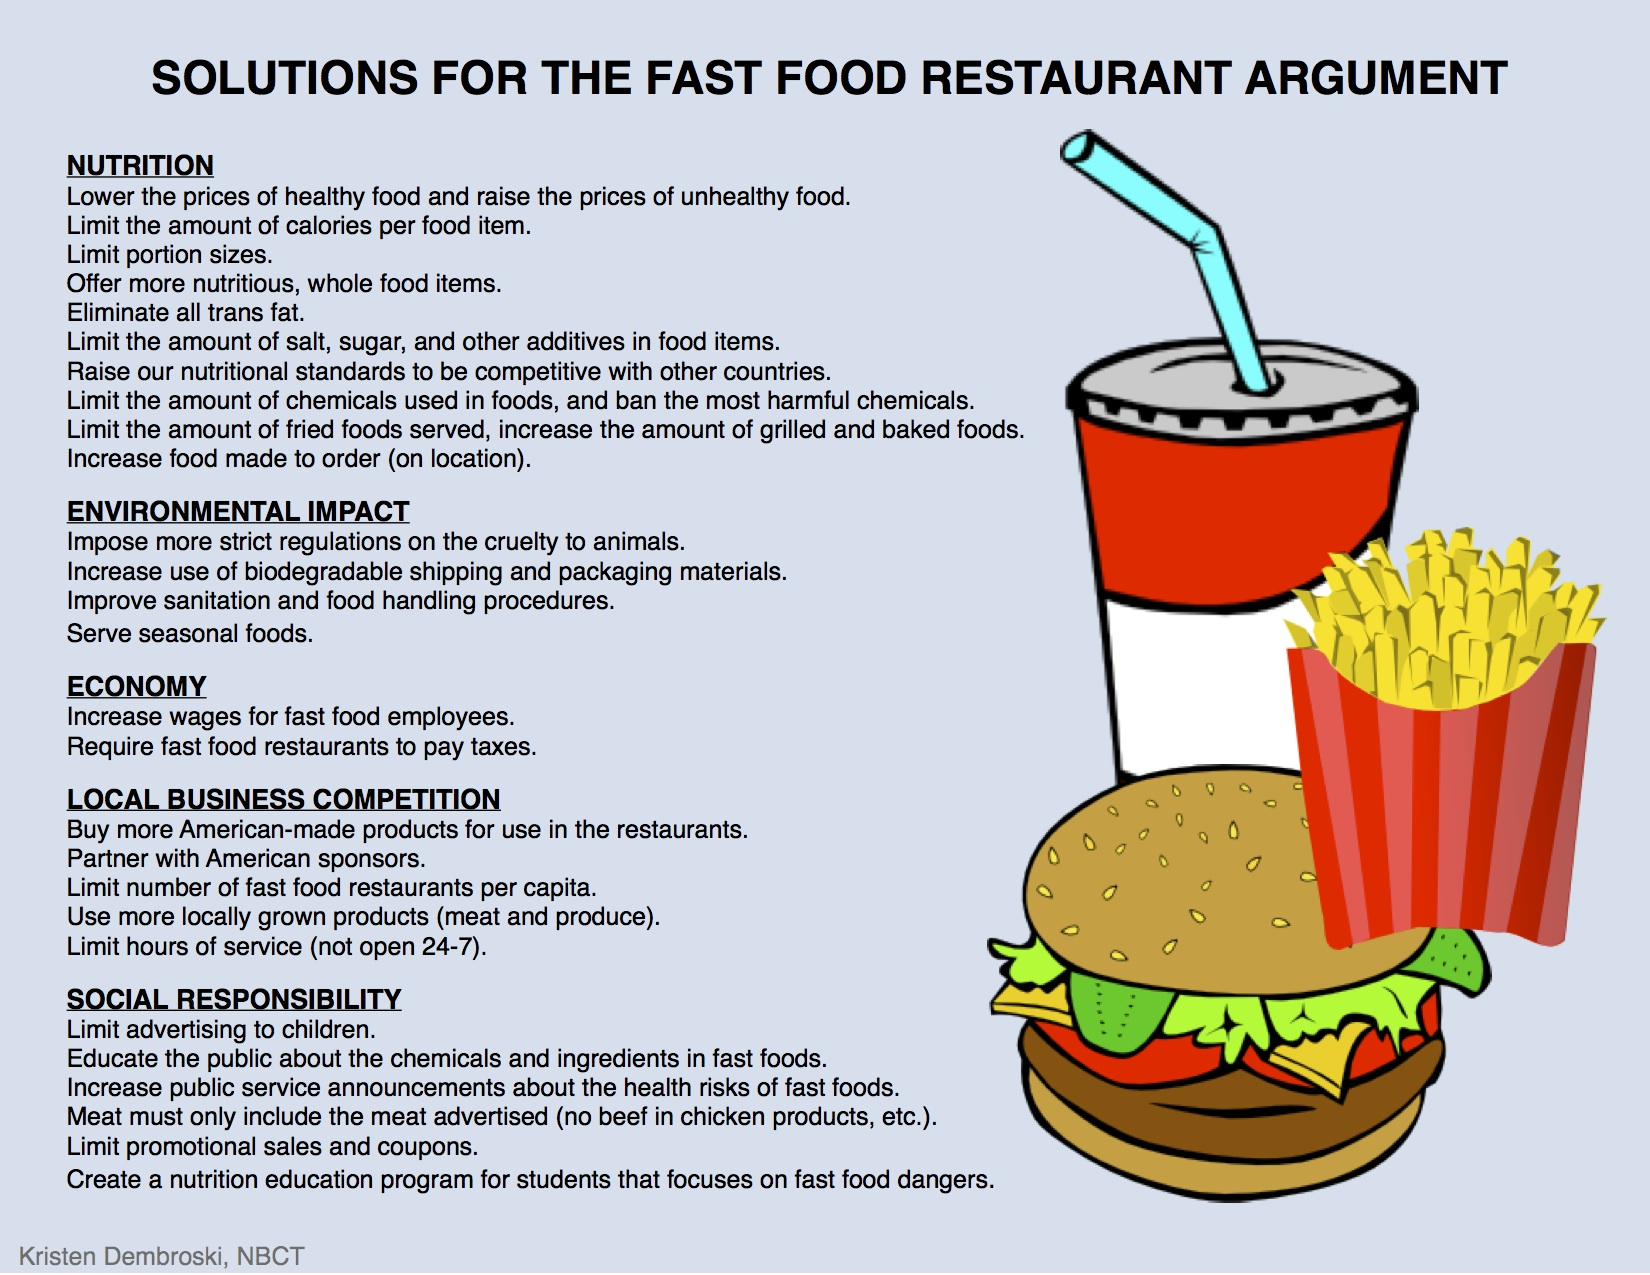 essay on fast food diet You will stop eating fast food forever once you see these disgusting ingredients  and nasty effects it has on your health.